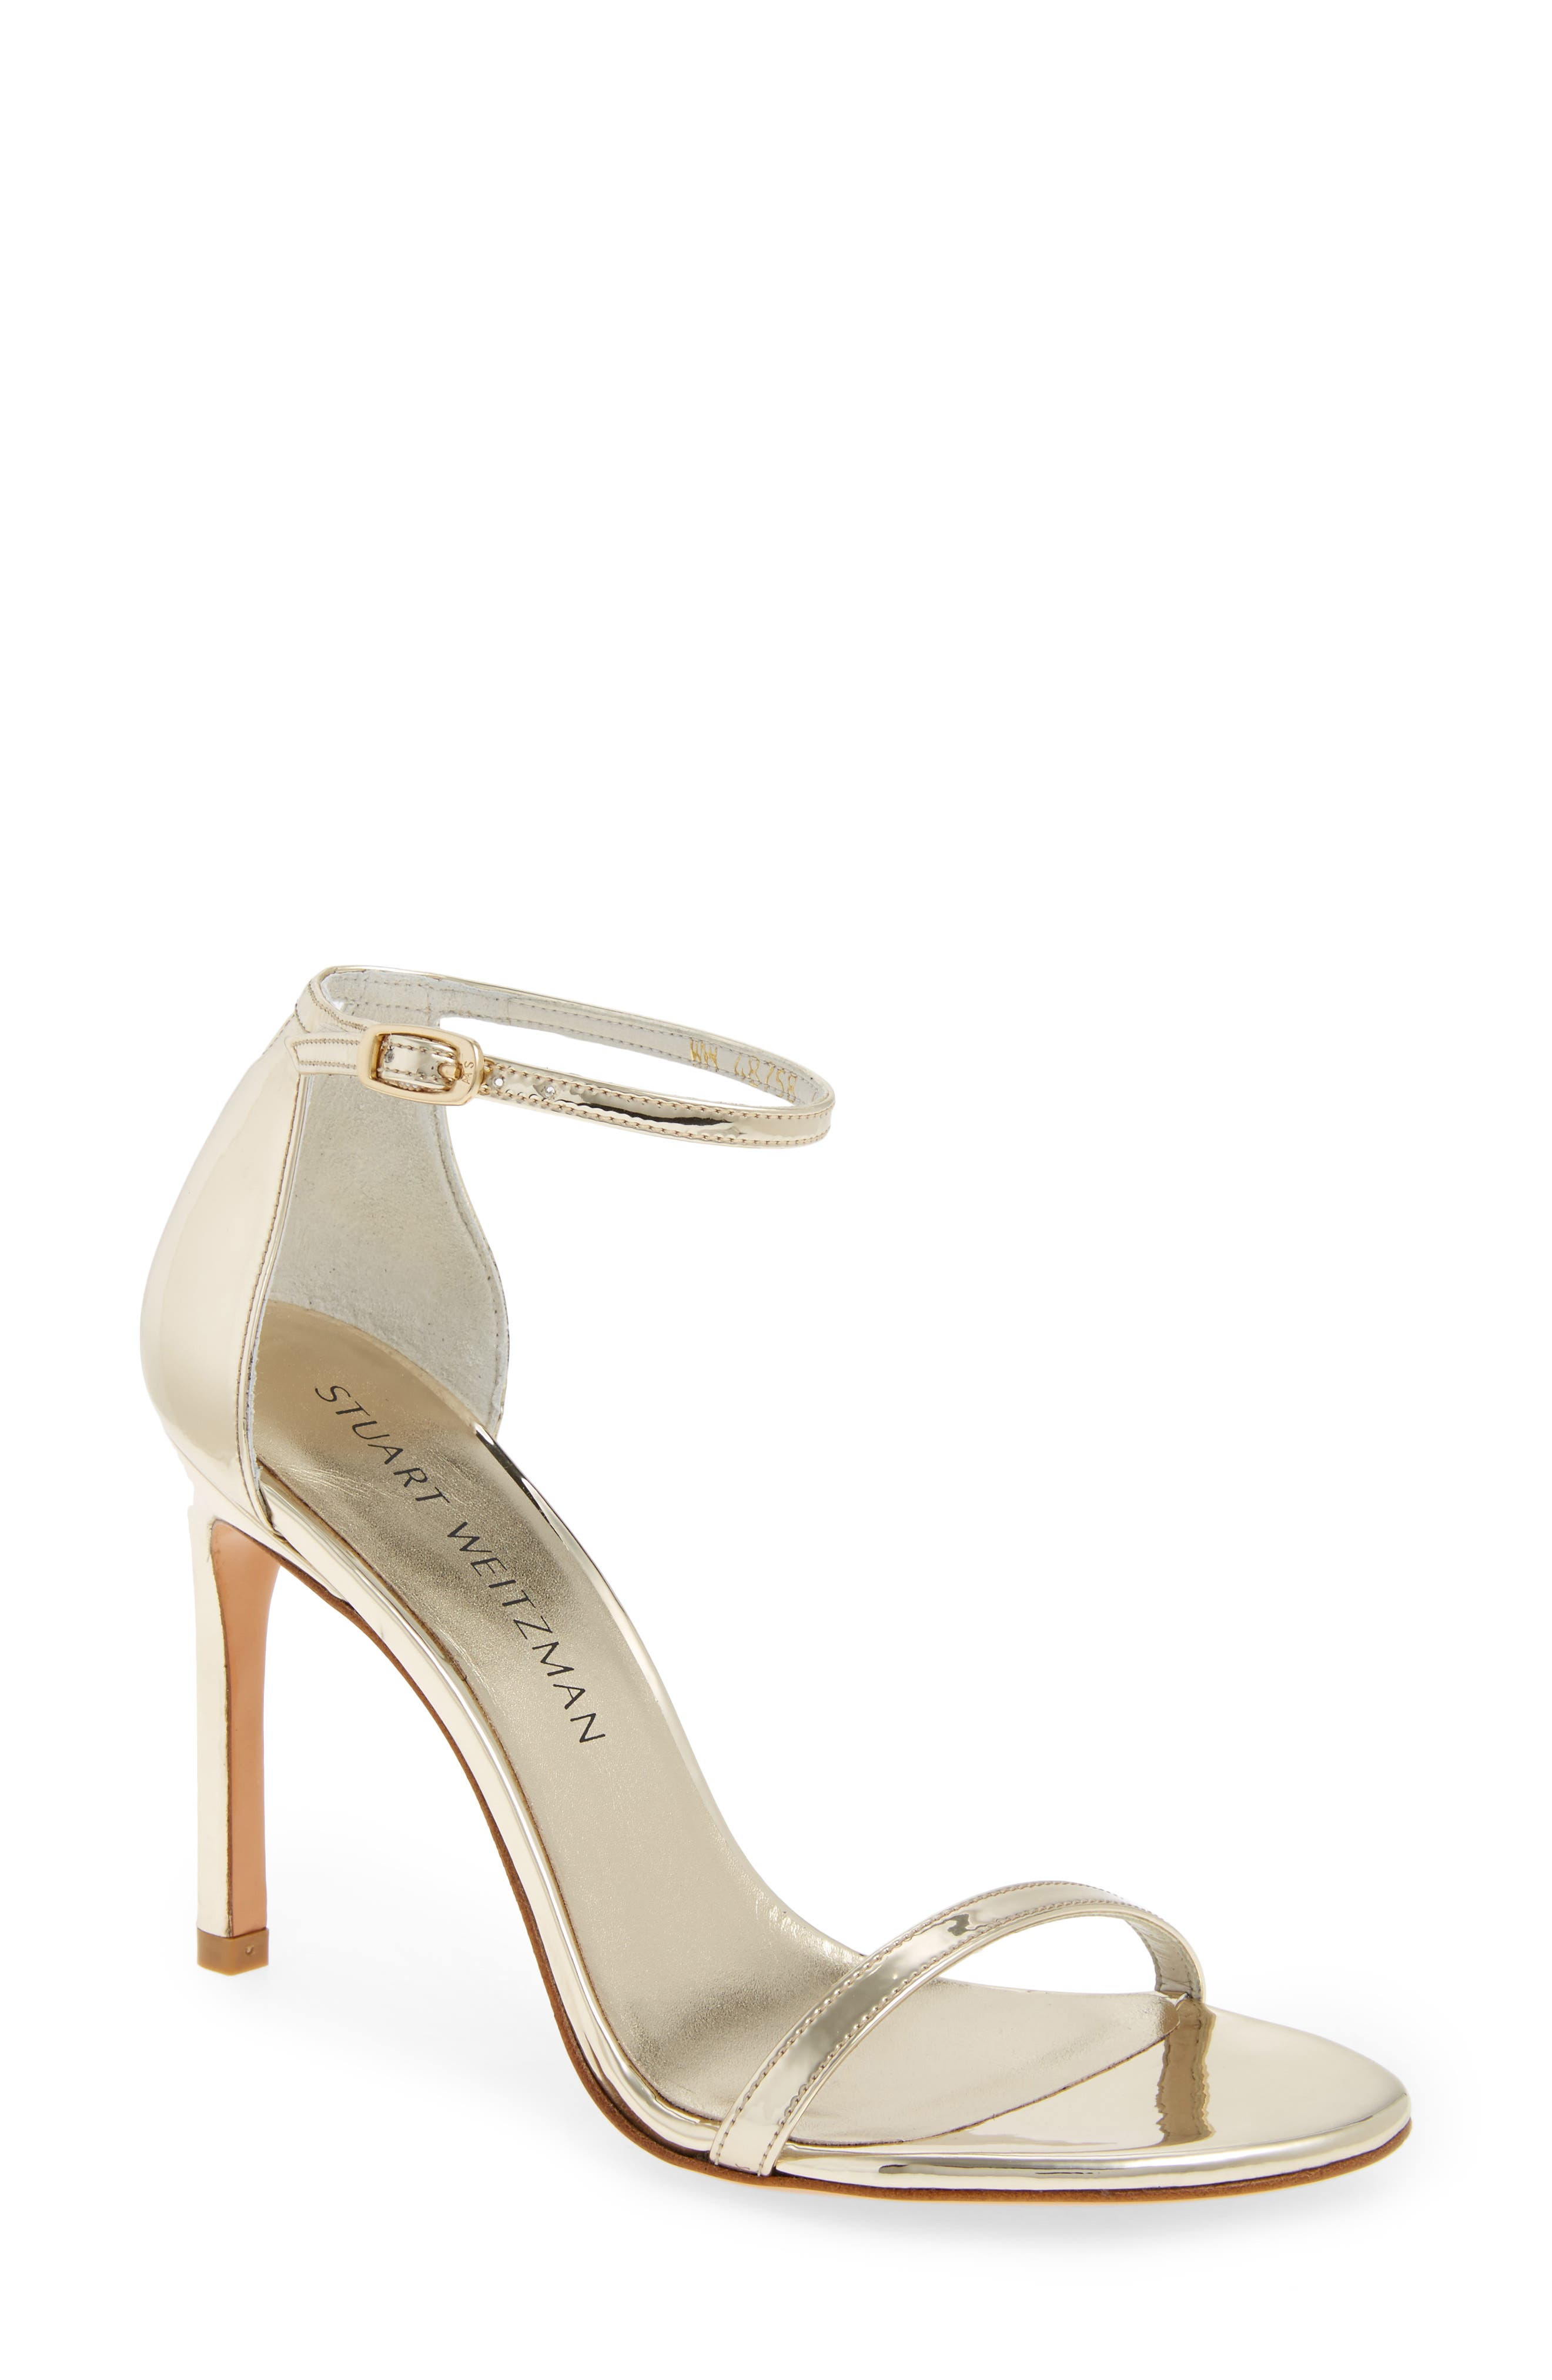 Nudistsong Ankle Strap Sandal,                             Main thumbnail 39, color,